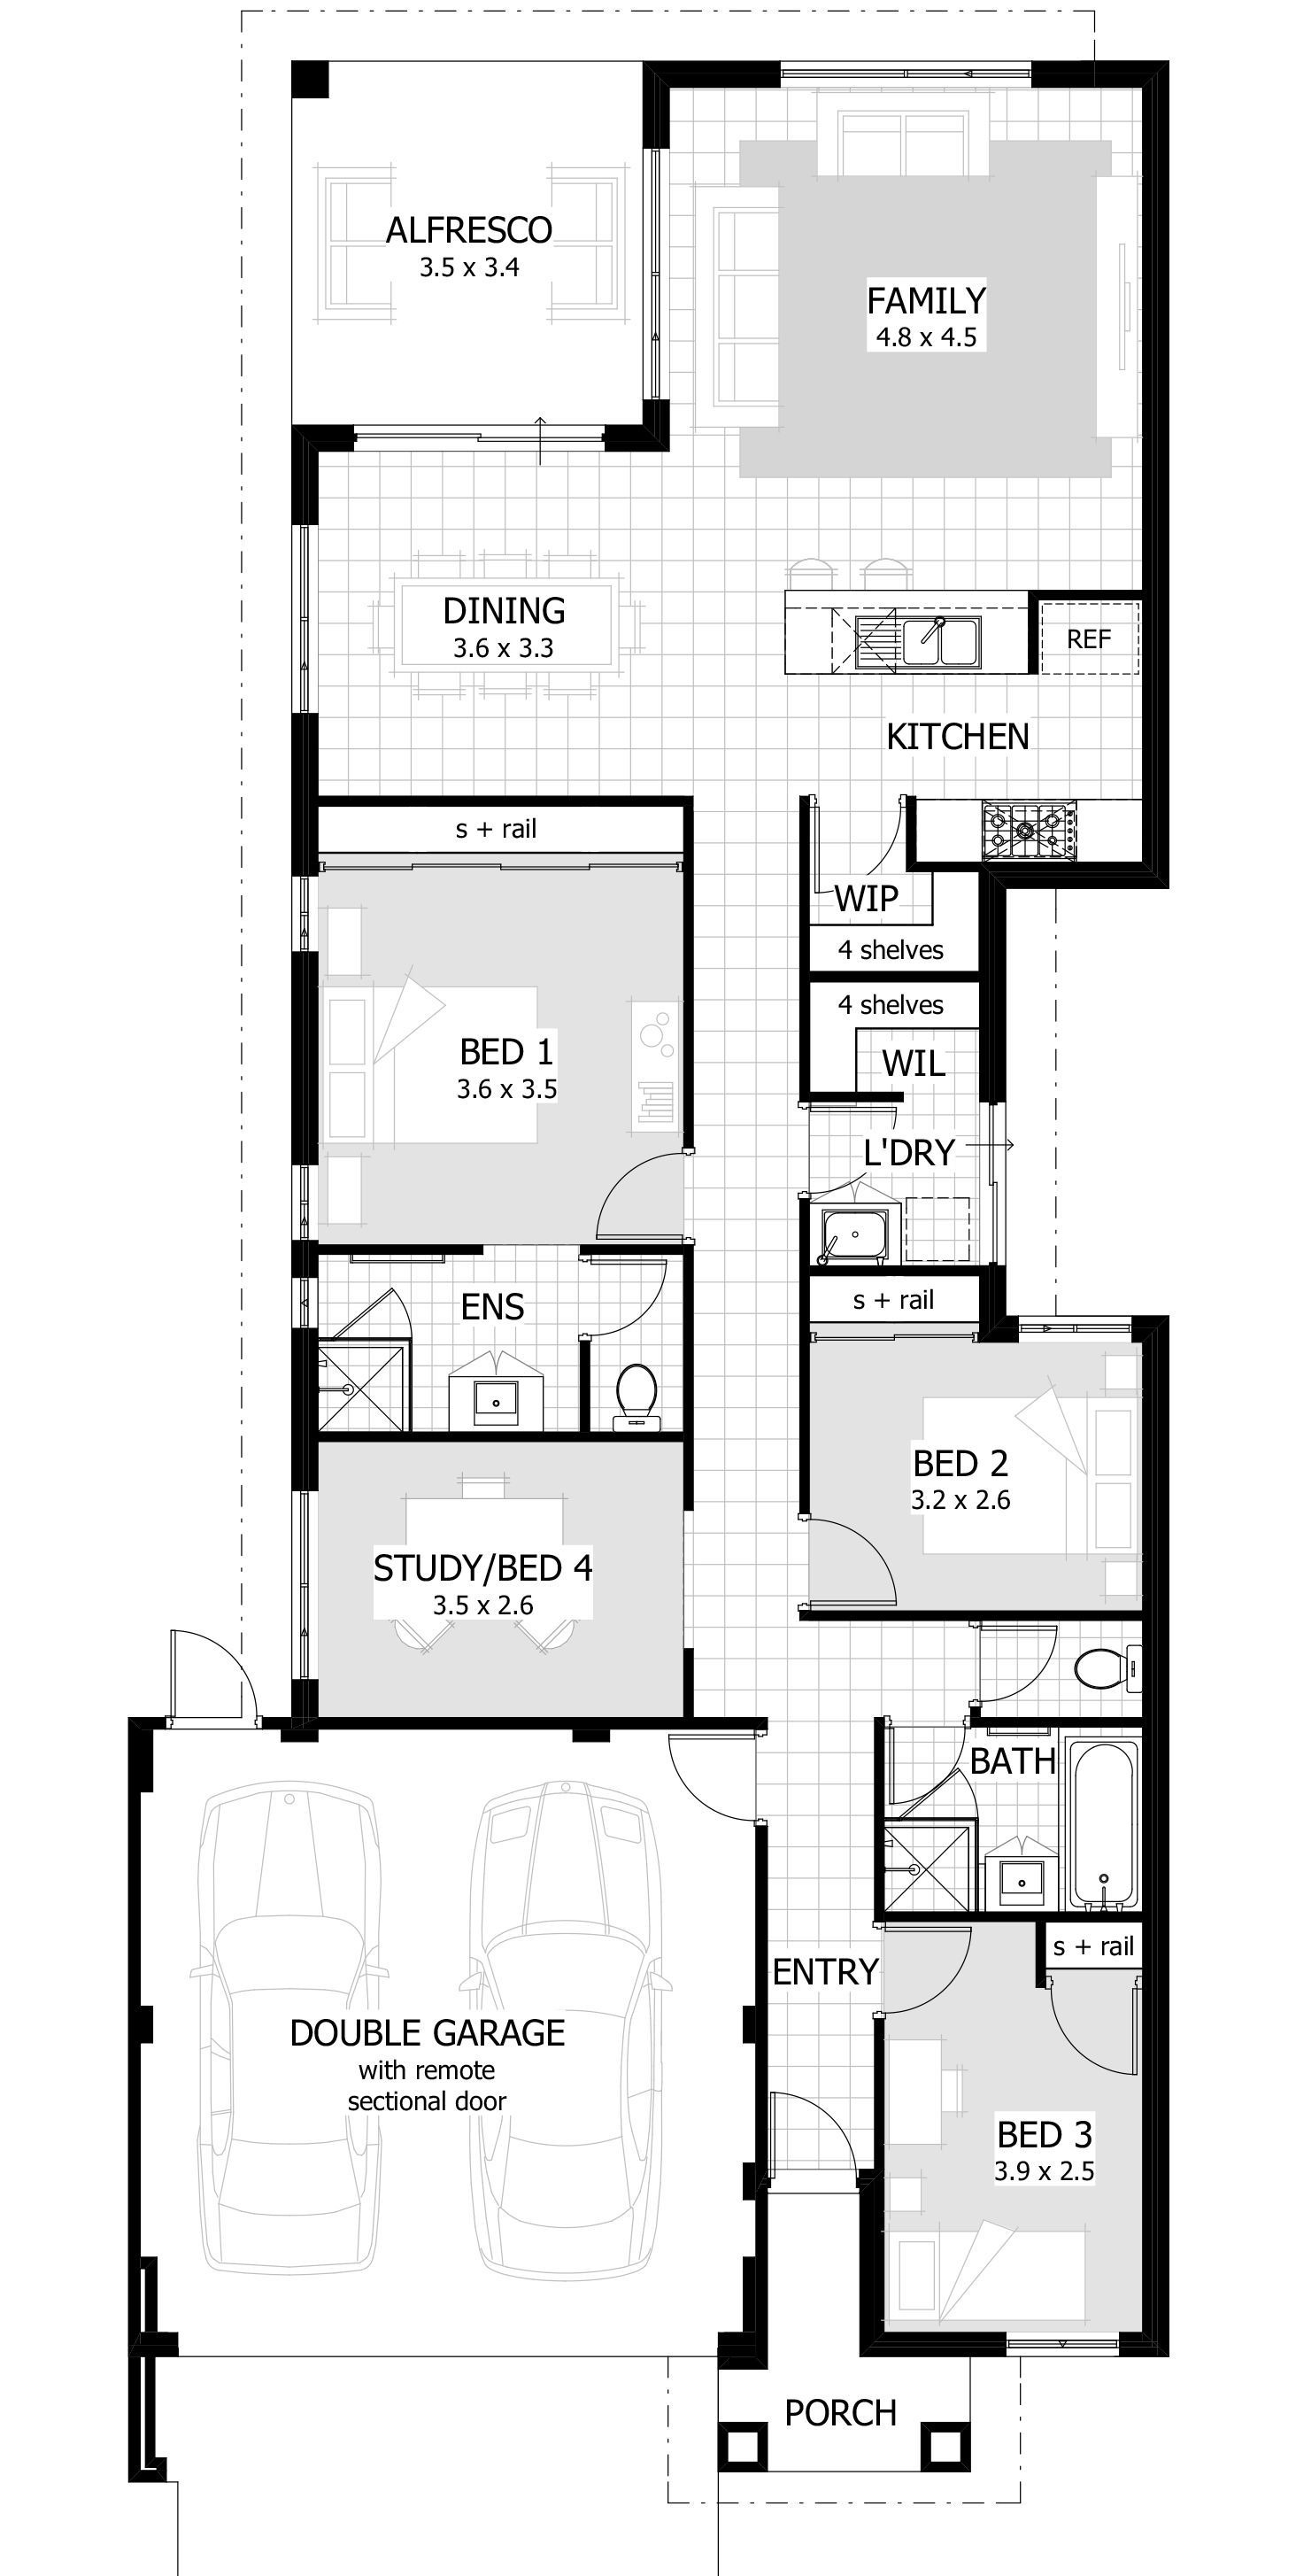 Contemporary Floor Plans for New Homes Awesome House Plans Narrow Block 2 Story Australia Google Search